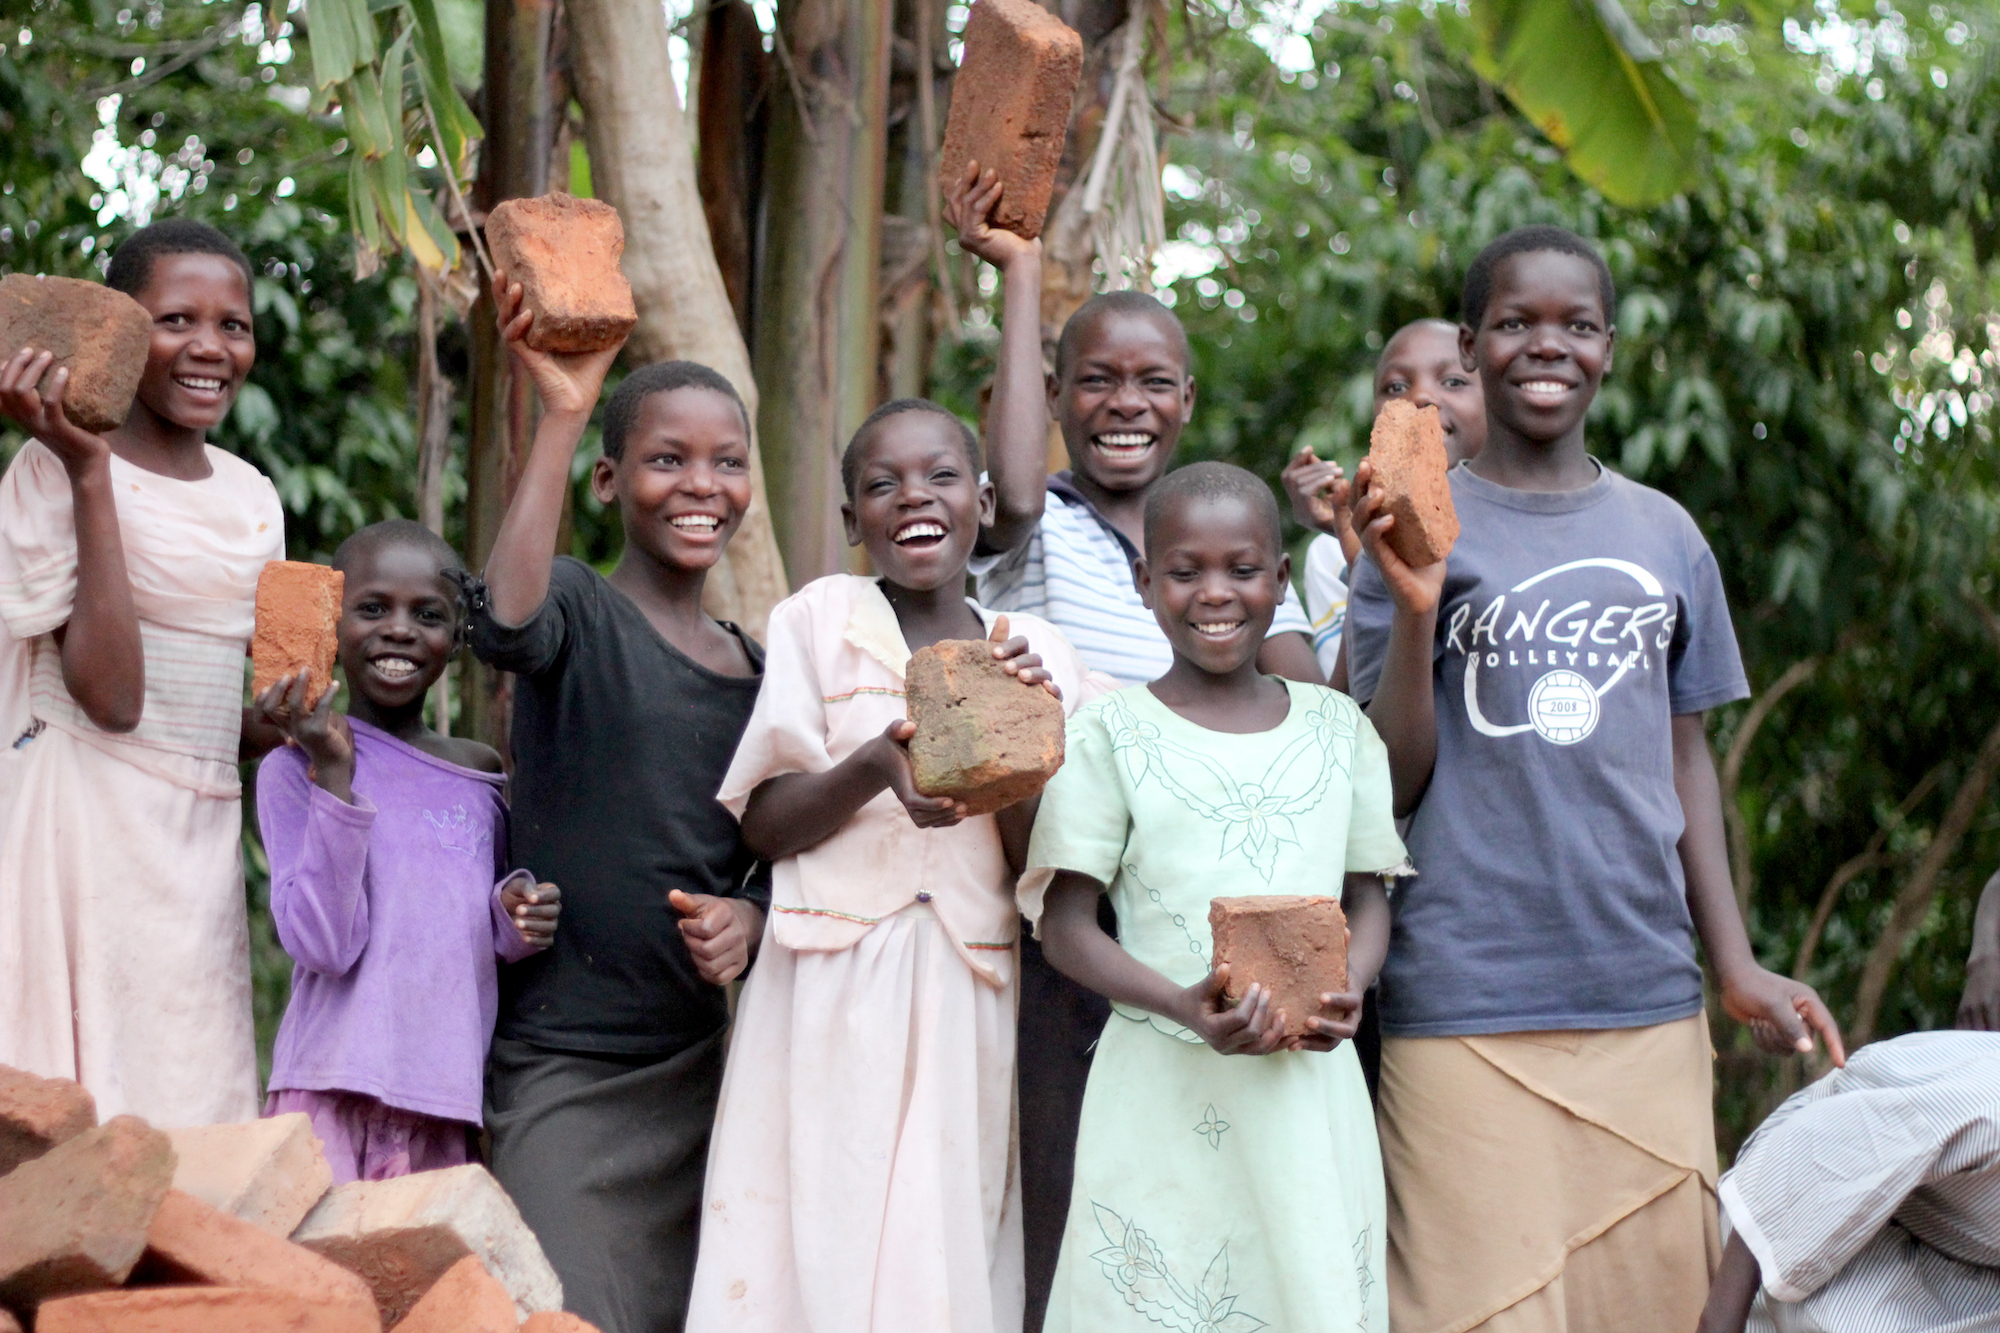 Group shot of smiling young people holding up bricks